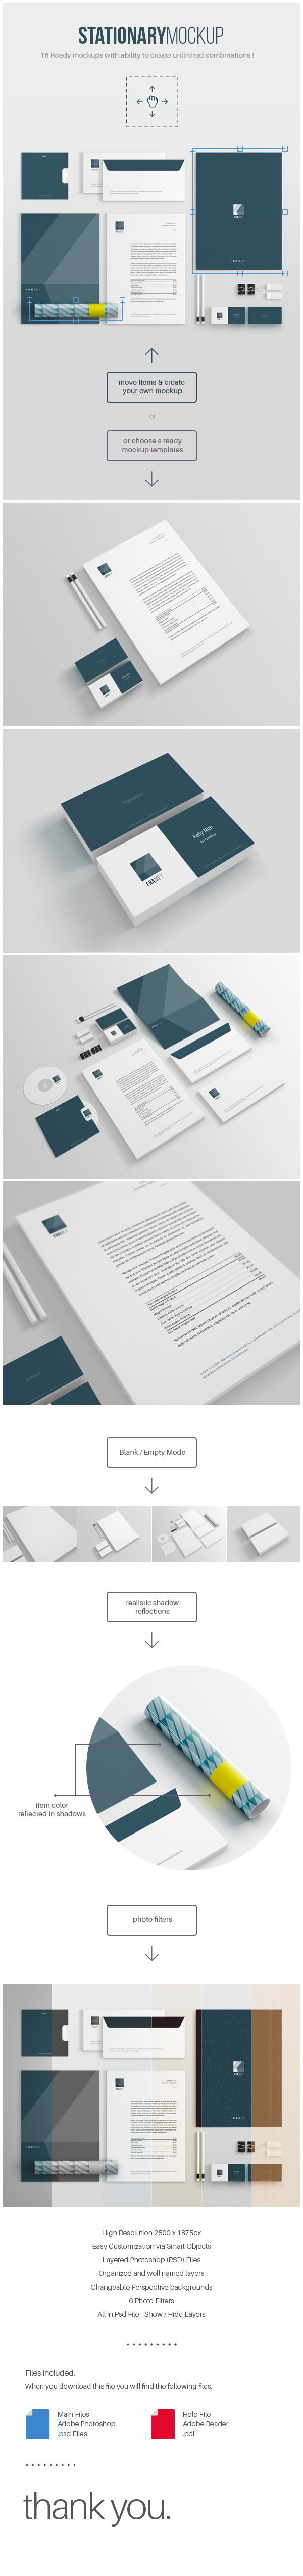 free stationery mockup on behance | design | typesetting, Presentation templates